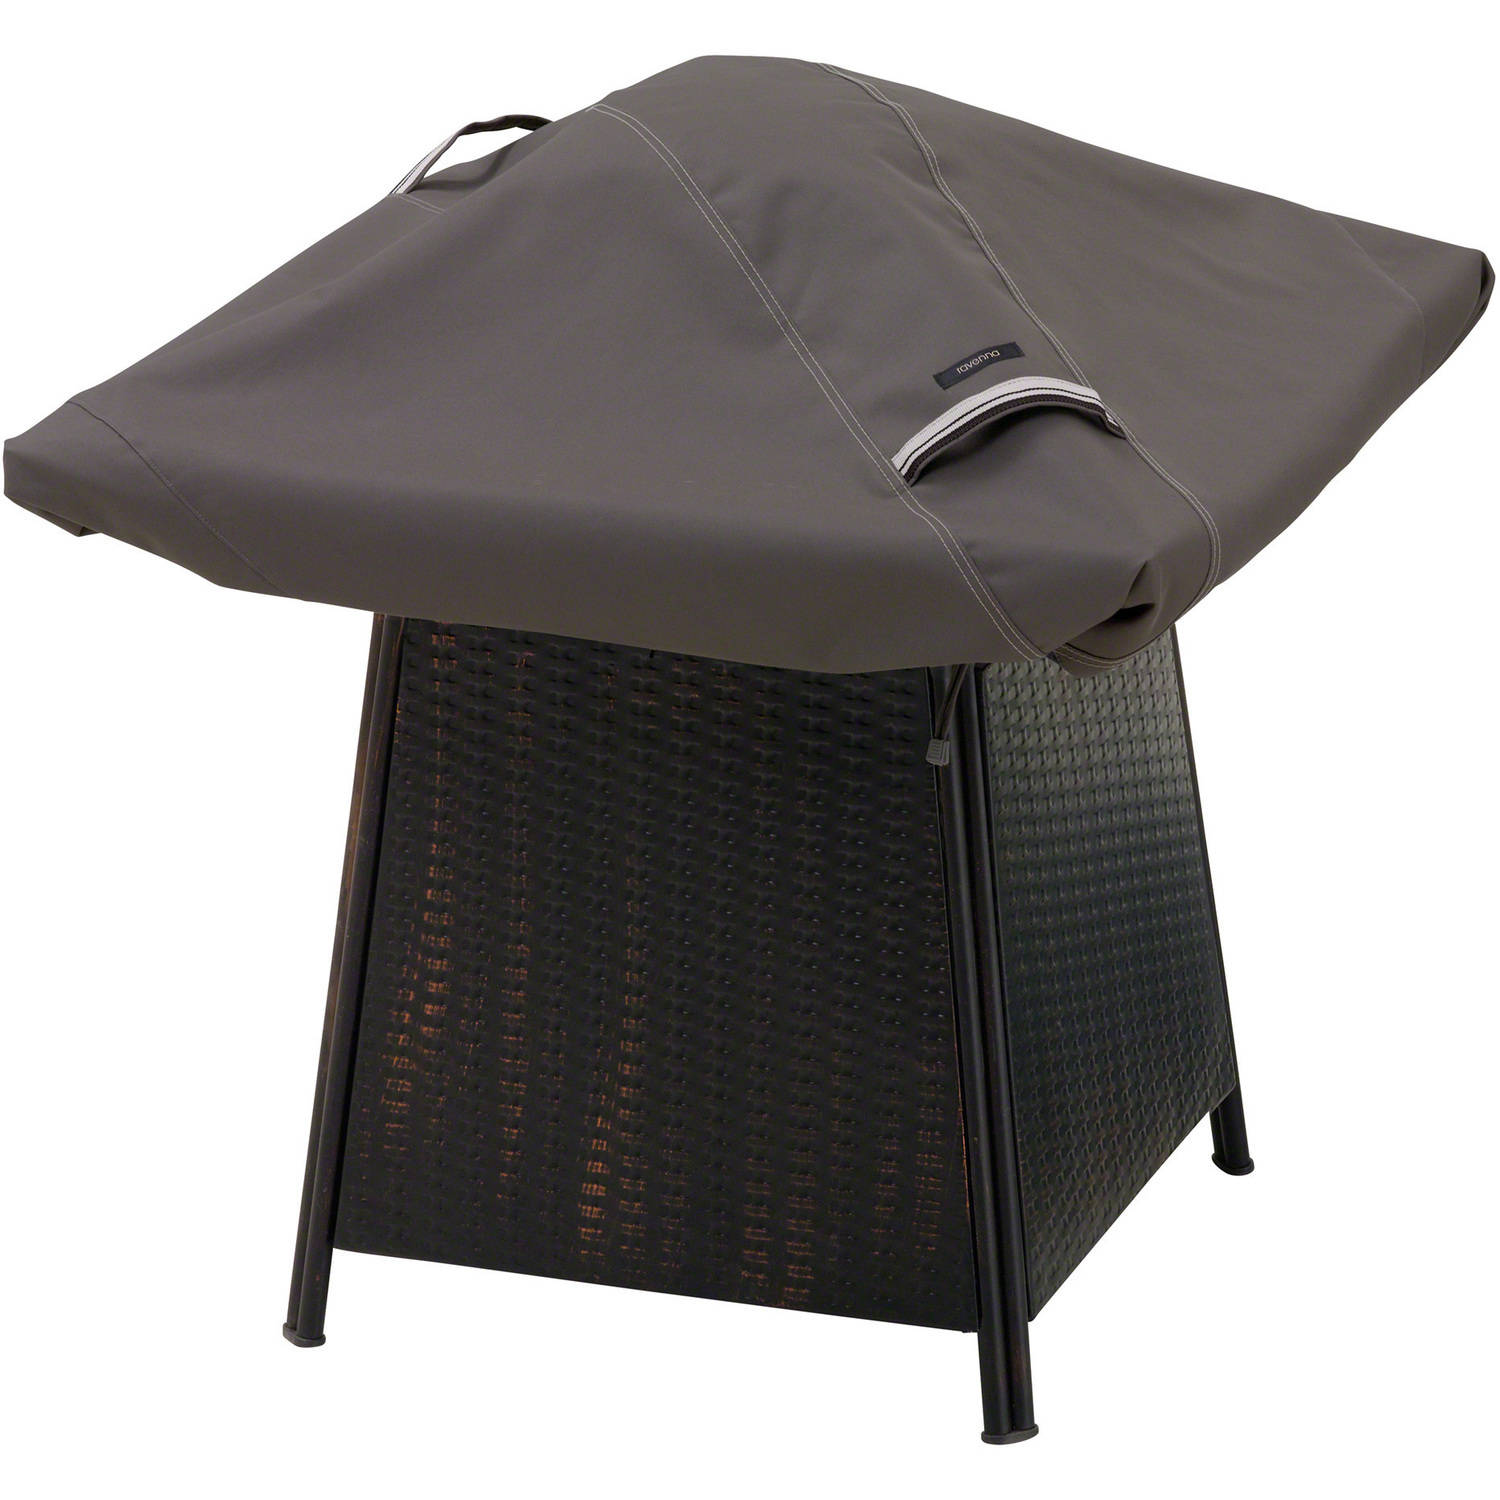 "Classic Accessories Ravenna Square Fire Pit Patio Storage Cover, Fits up to 40"", Taupe"